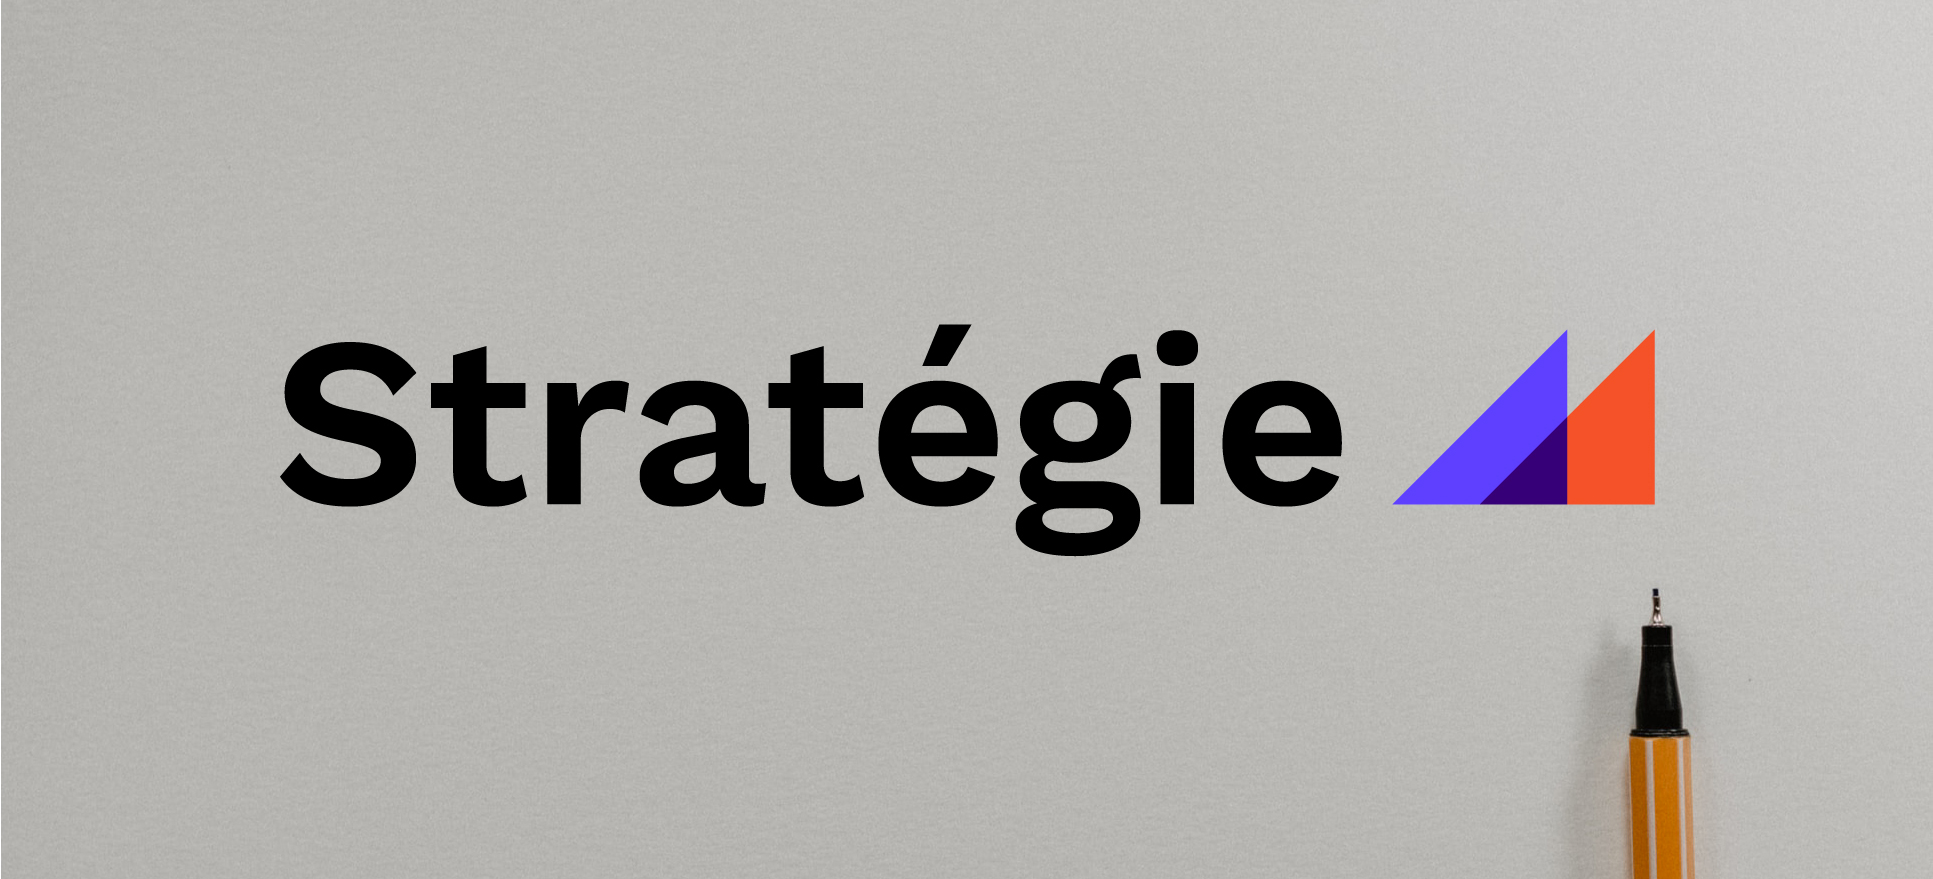 strategie-2